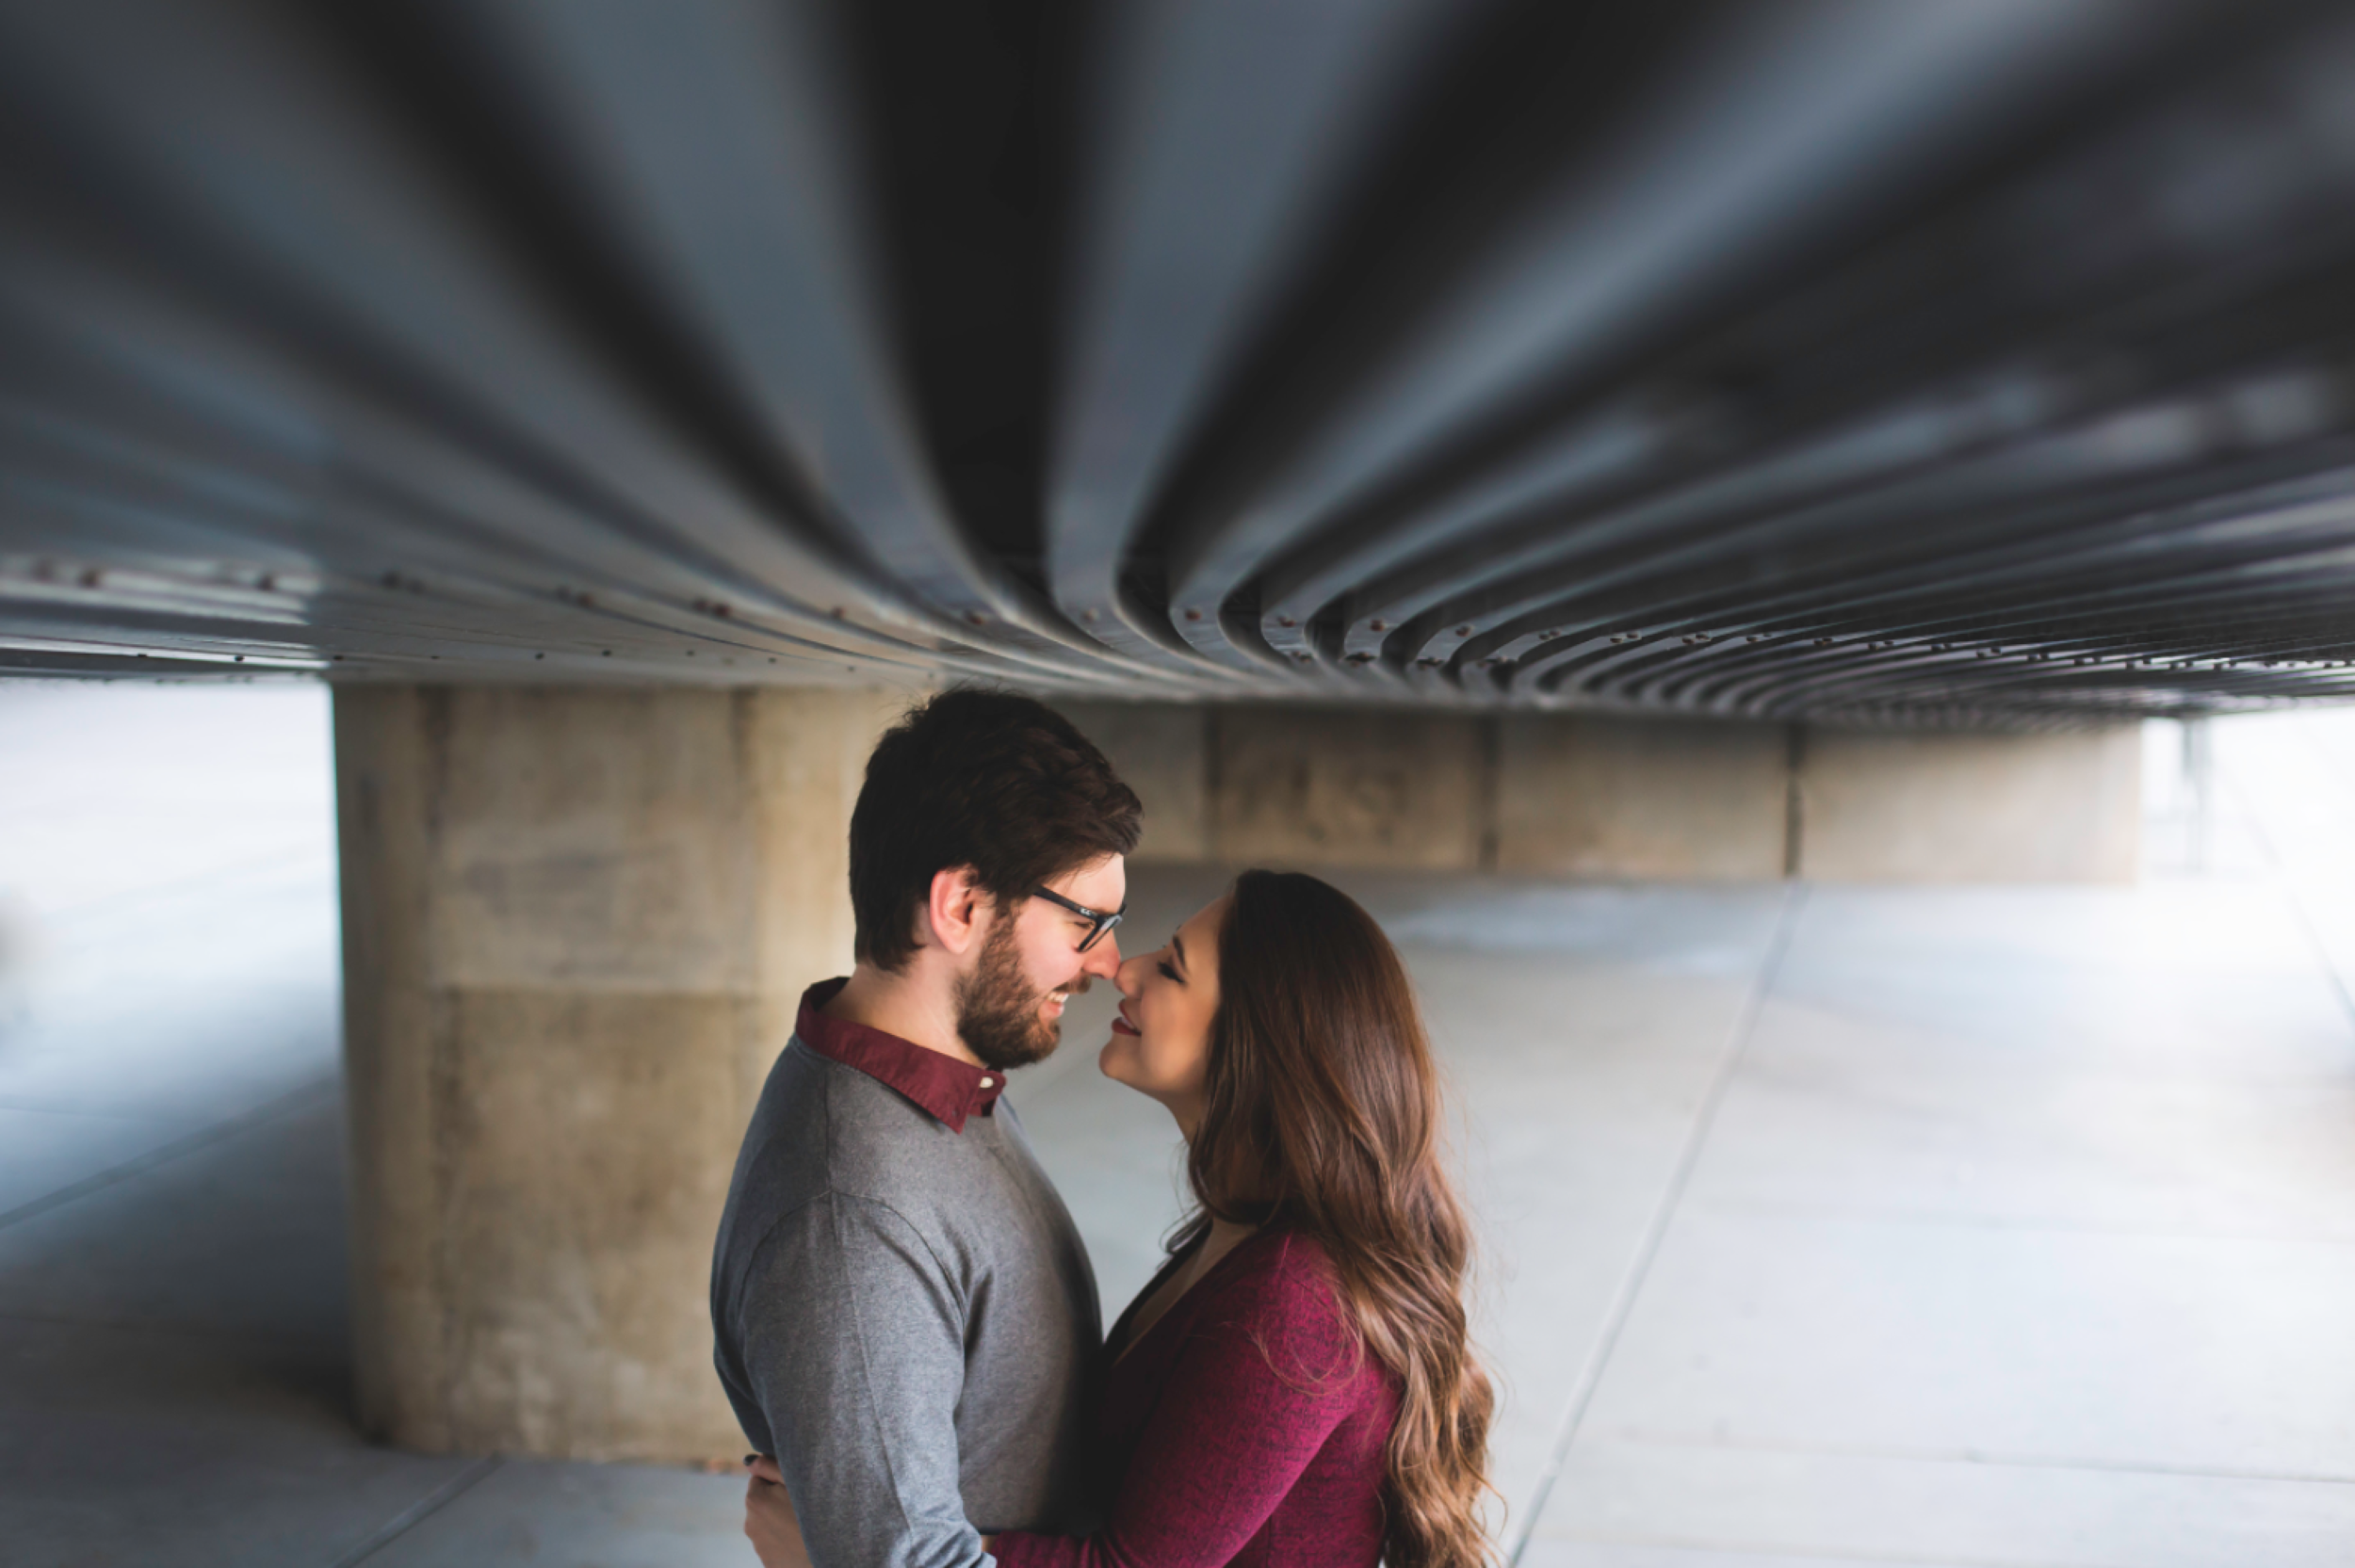 Engagement-Session-Hamilton-Burlington-Oakville-Niagara-Toronto-Wedding-Photographer-Engaged-Photography-Urban-Engaged-Downtown-Golden-Hour-Moments-by-Lauren-Photo-Image-21.png